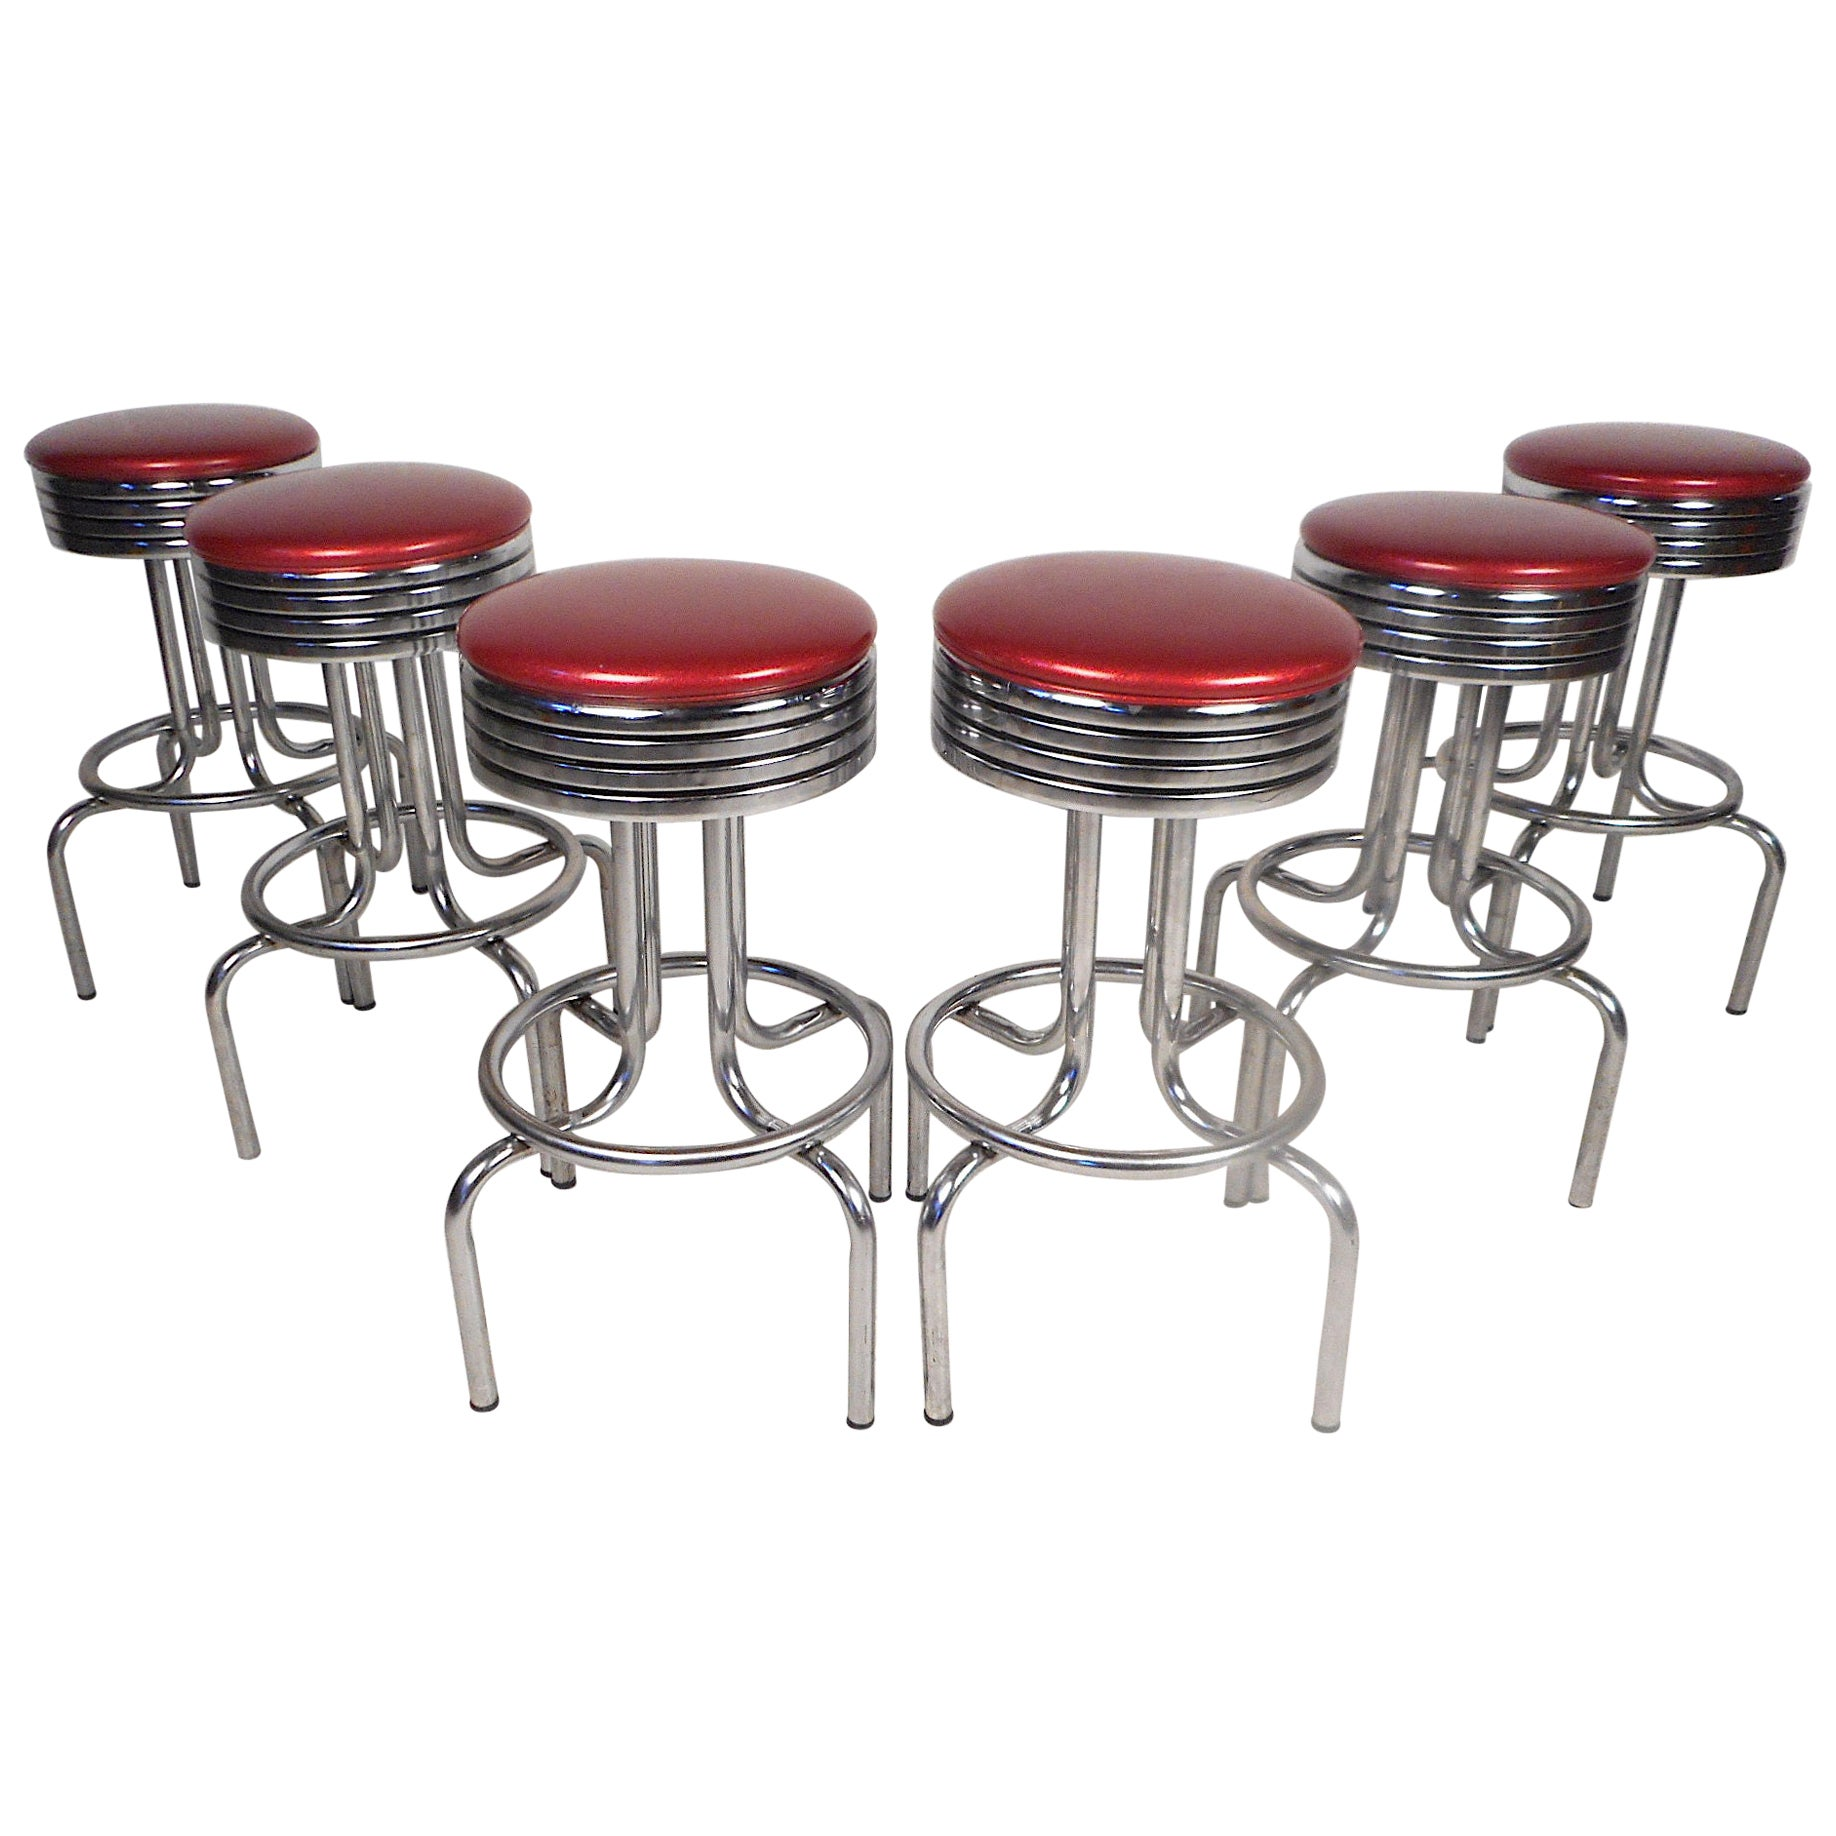 Midcentury Swiveling Stools, Set of 6